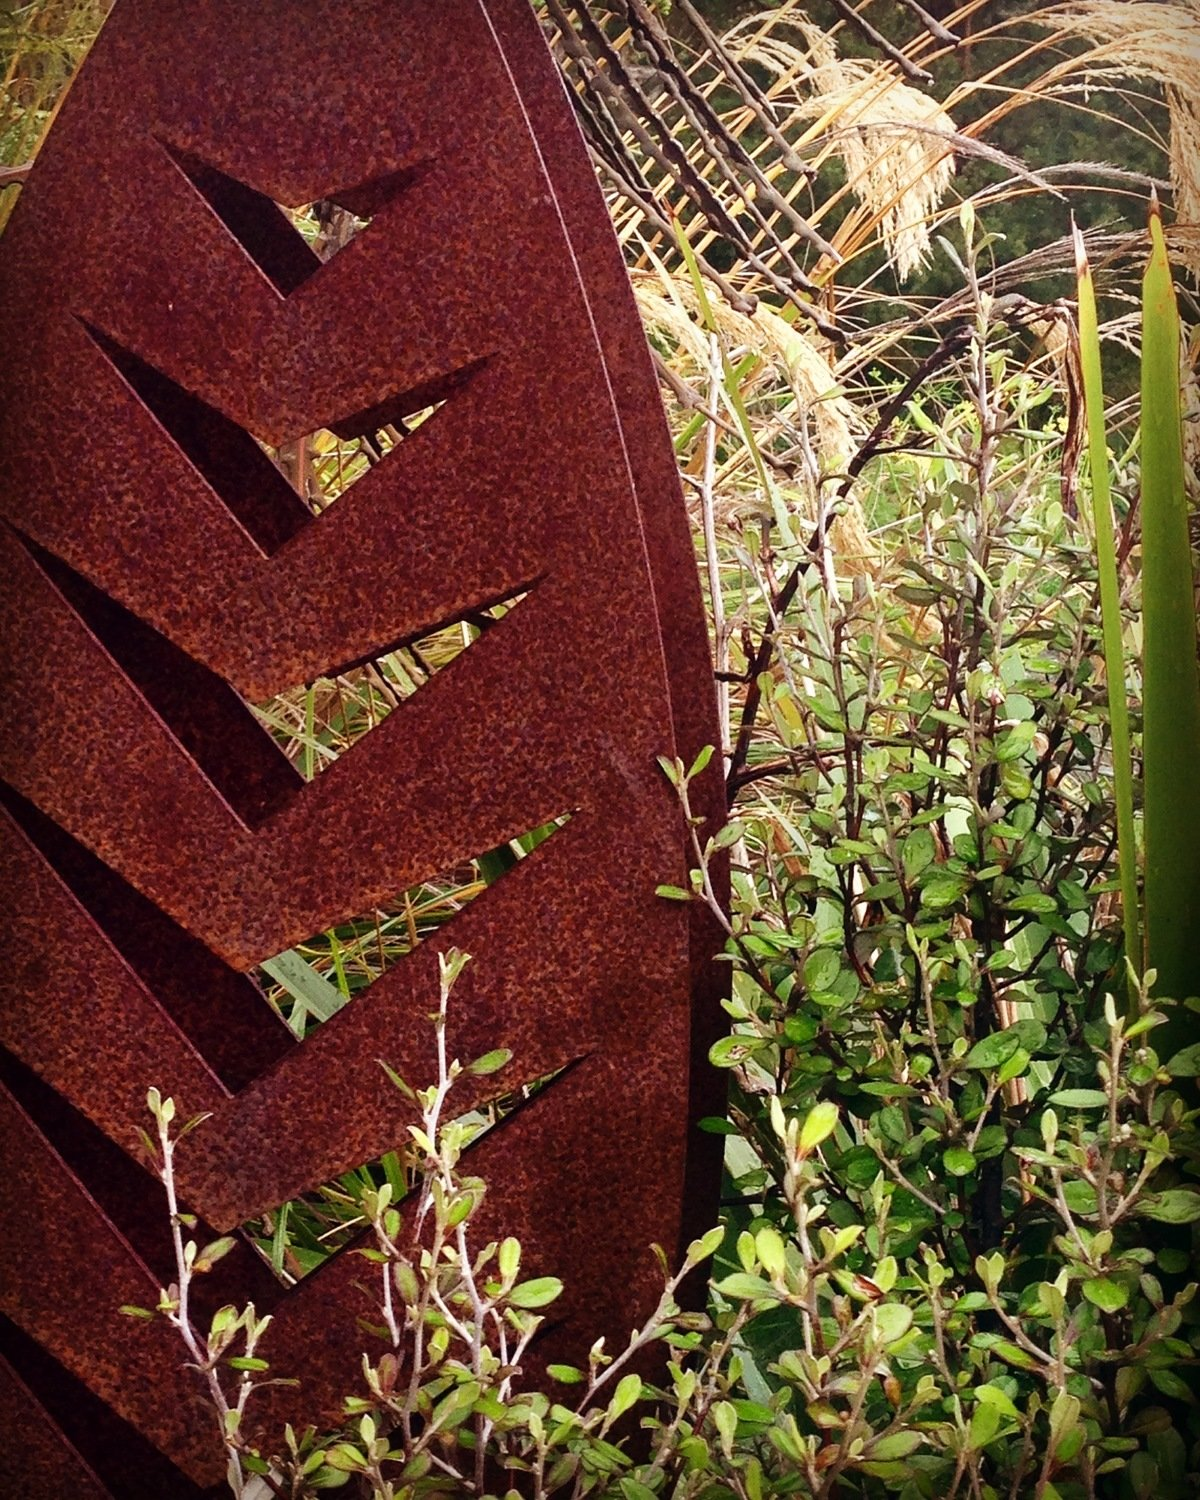 3D Corten Arrow Sculptures